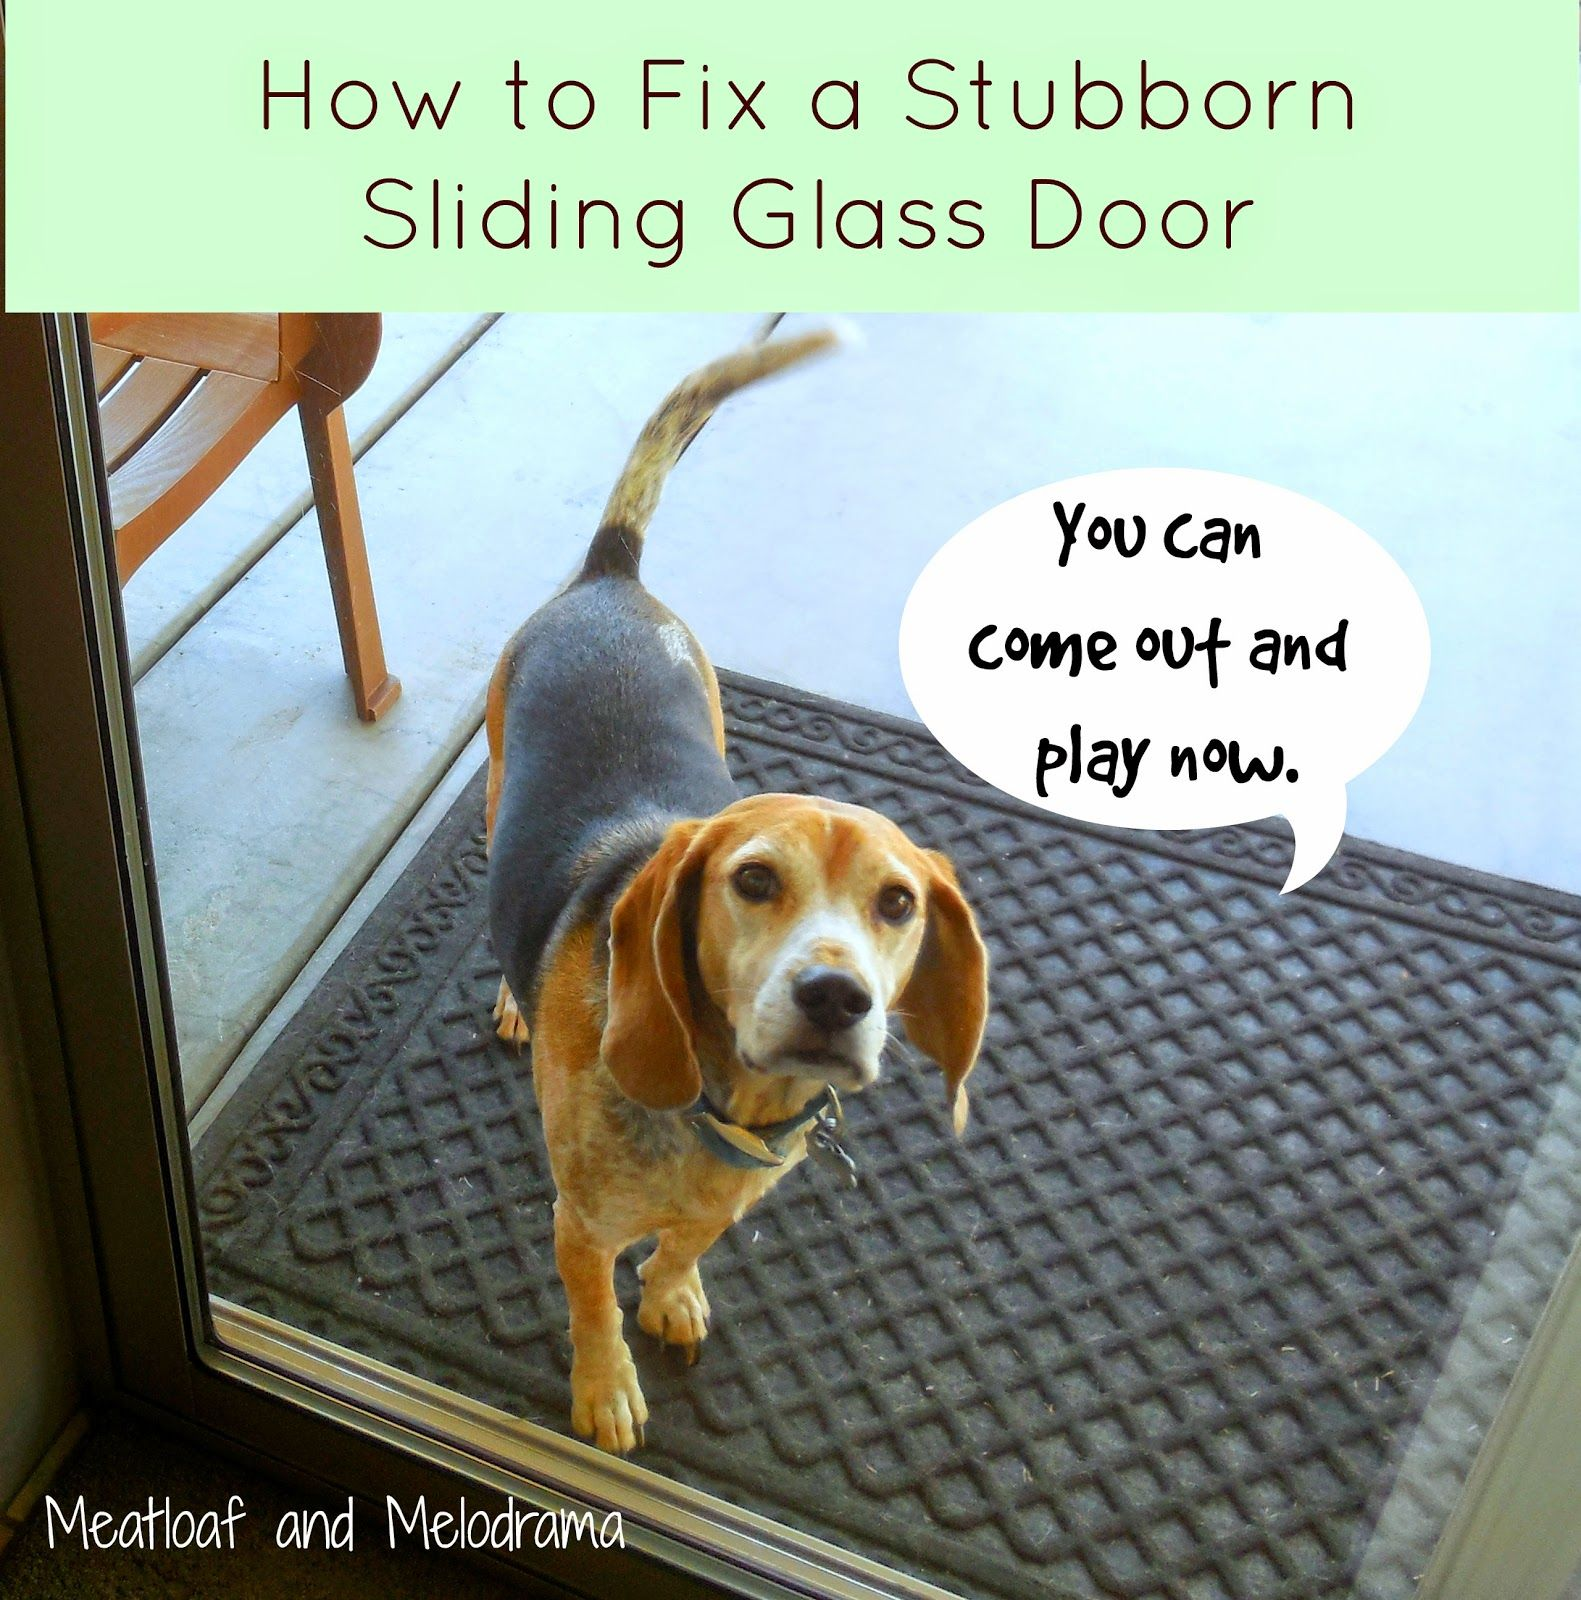 How To Fix A Stubborn Sliding Glass Door And Clean The Track Easy Way Without